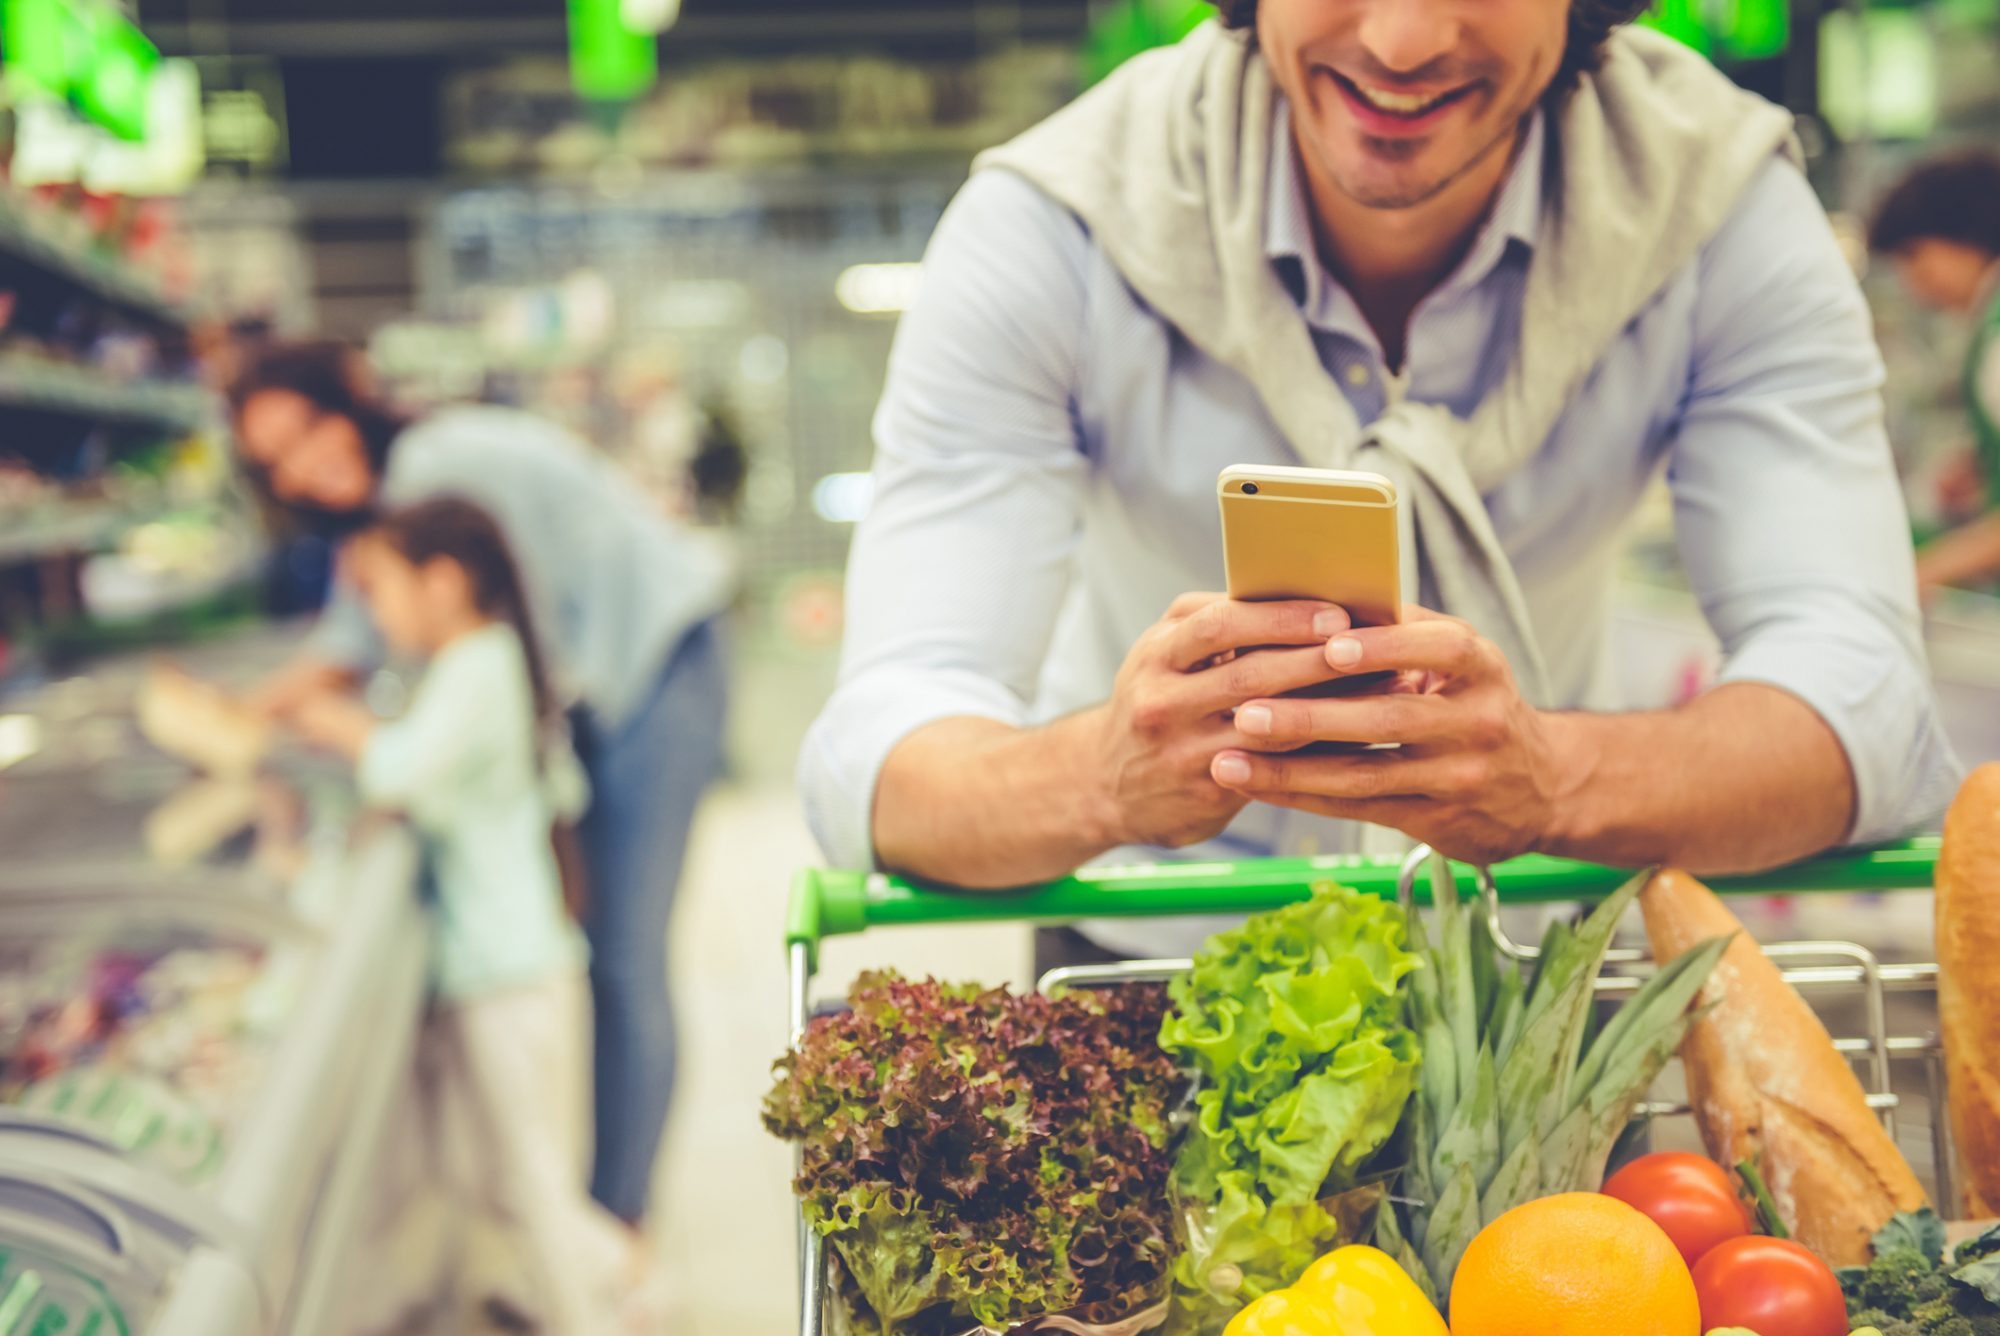 Family in the supermarket. Cropped image of dad leaning on shopping cart, using a mobile phone and smiling, in the background his wife and daughter are choosing food